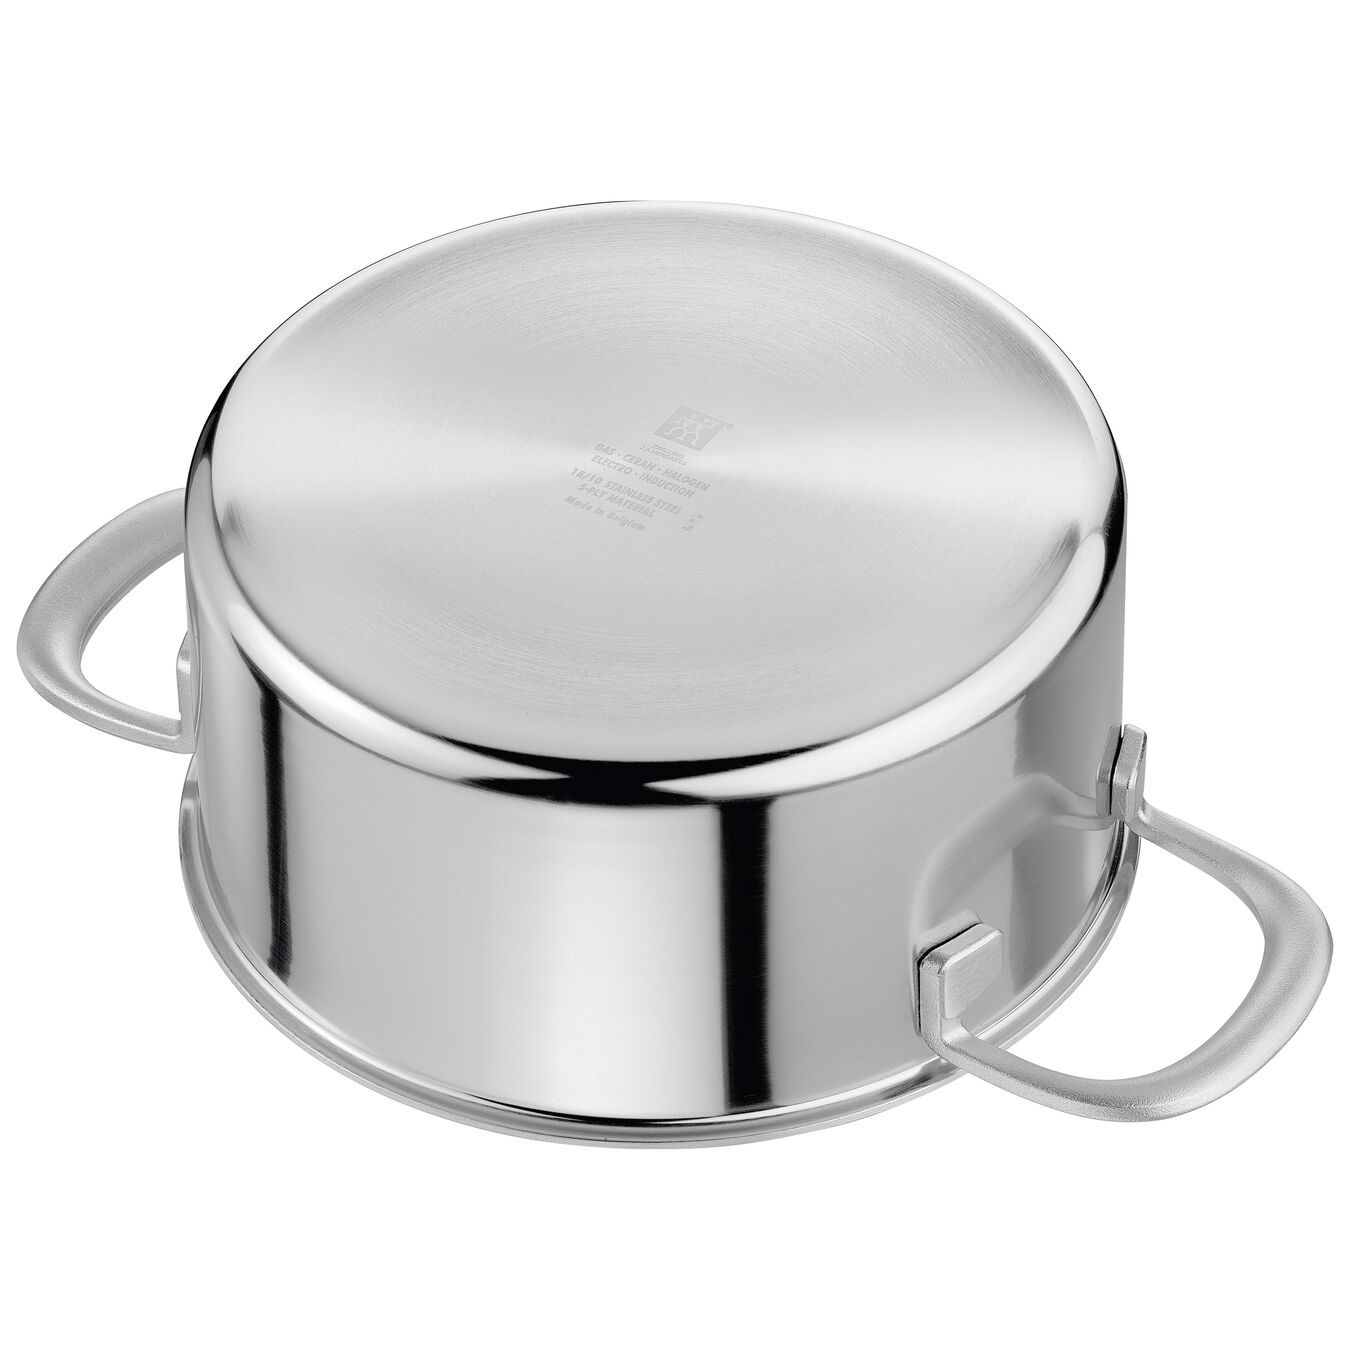 5.25 l 18/10 Stainless Steel Stew pot,,large 5